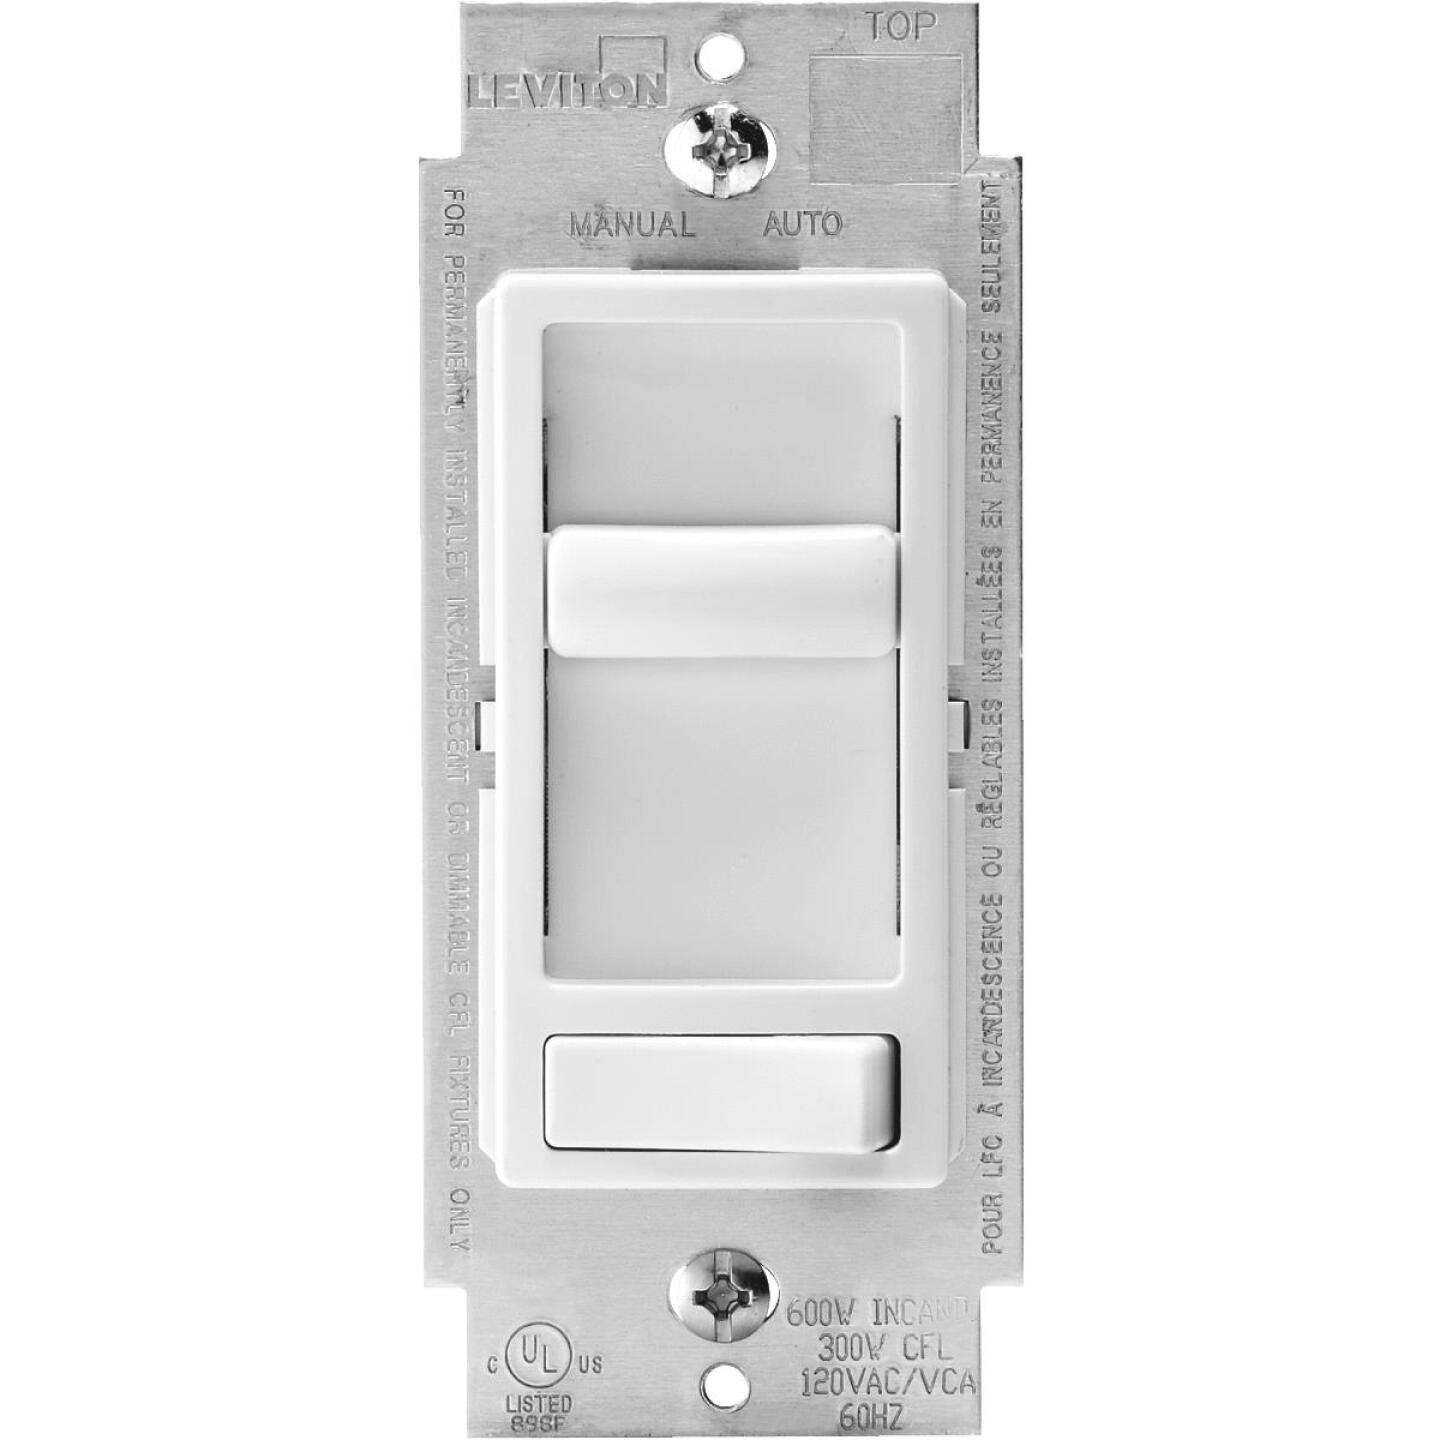 Leviton Decora Incandescent/LED/CFL White Slide Dimmer Switch Image 1